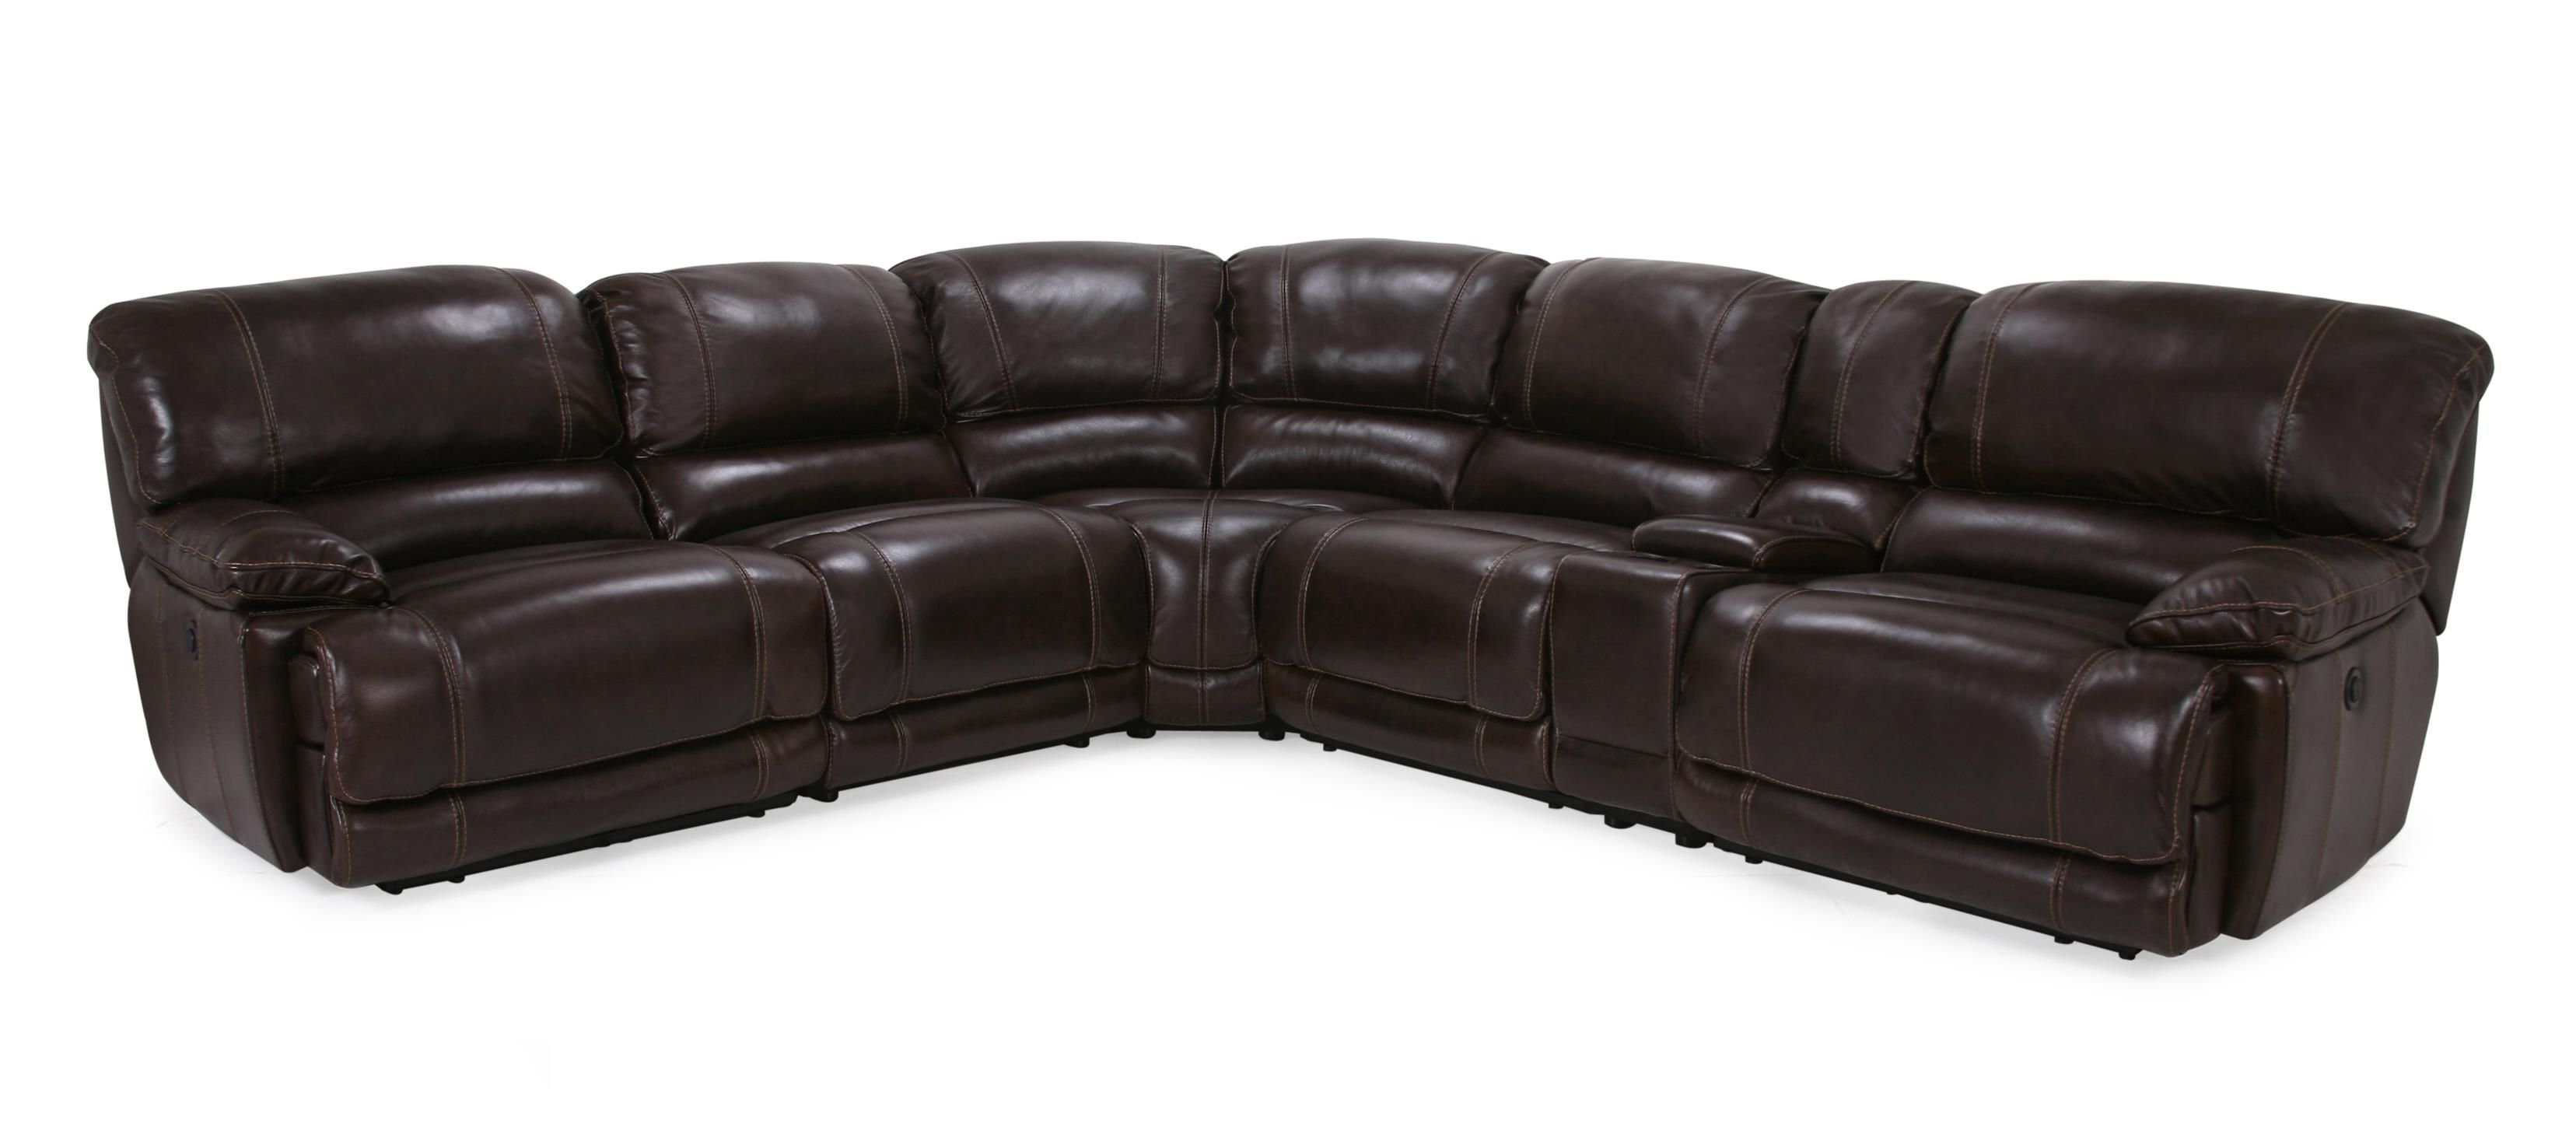 Calder Grey 6 Piece Manual Reclining Sectionals For Widely Used Fabulous 25 Power Reclining Sectional Sofa Favorite (Gallery 12 of 20)